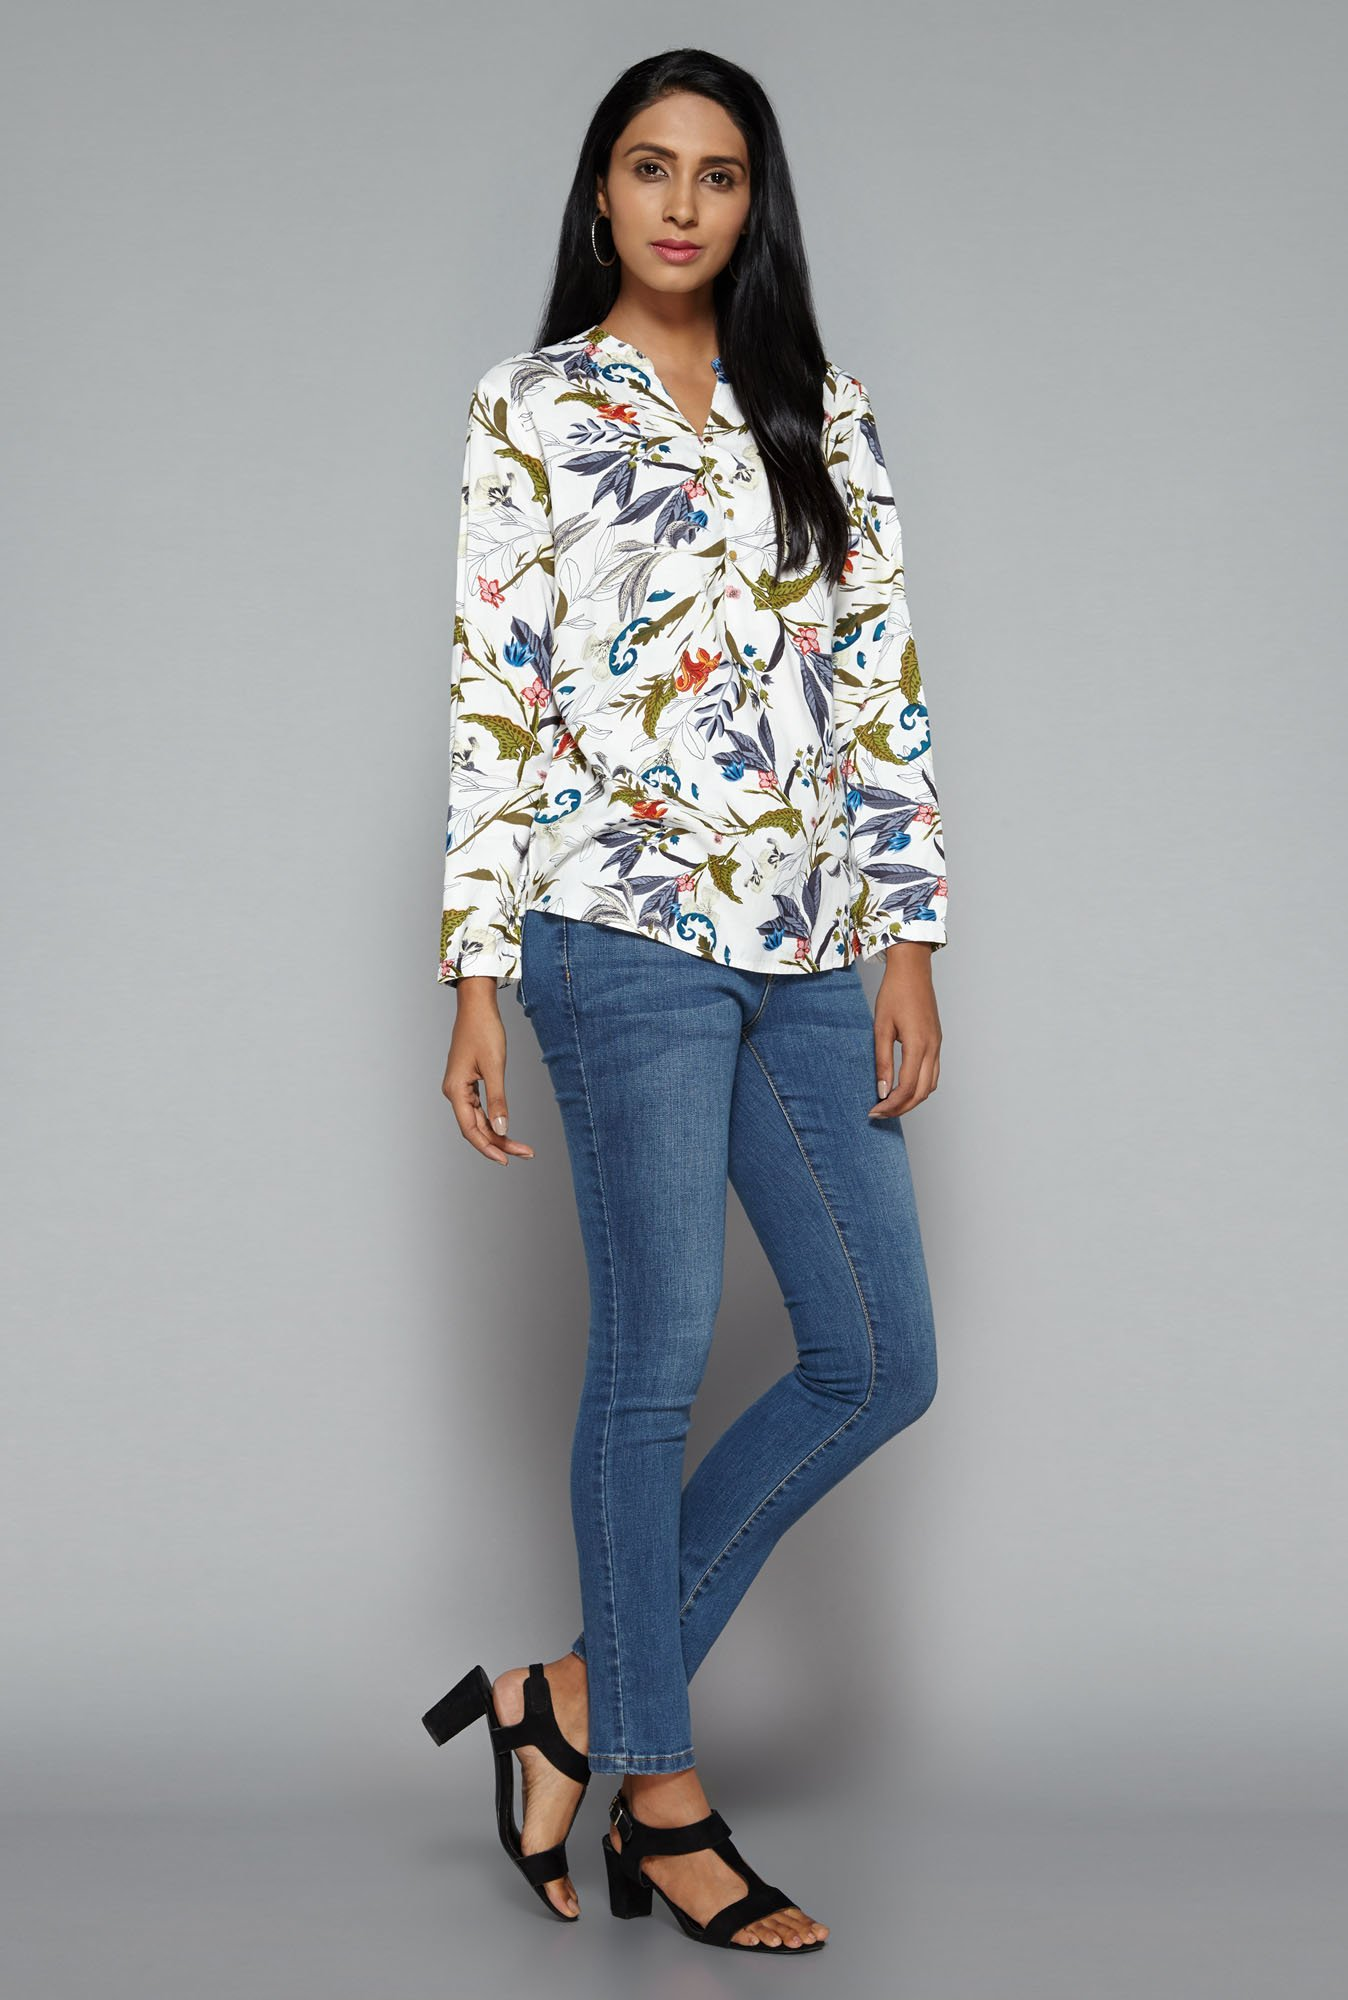 LOV by Westside White Leonne Blouse